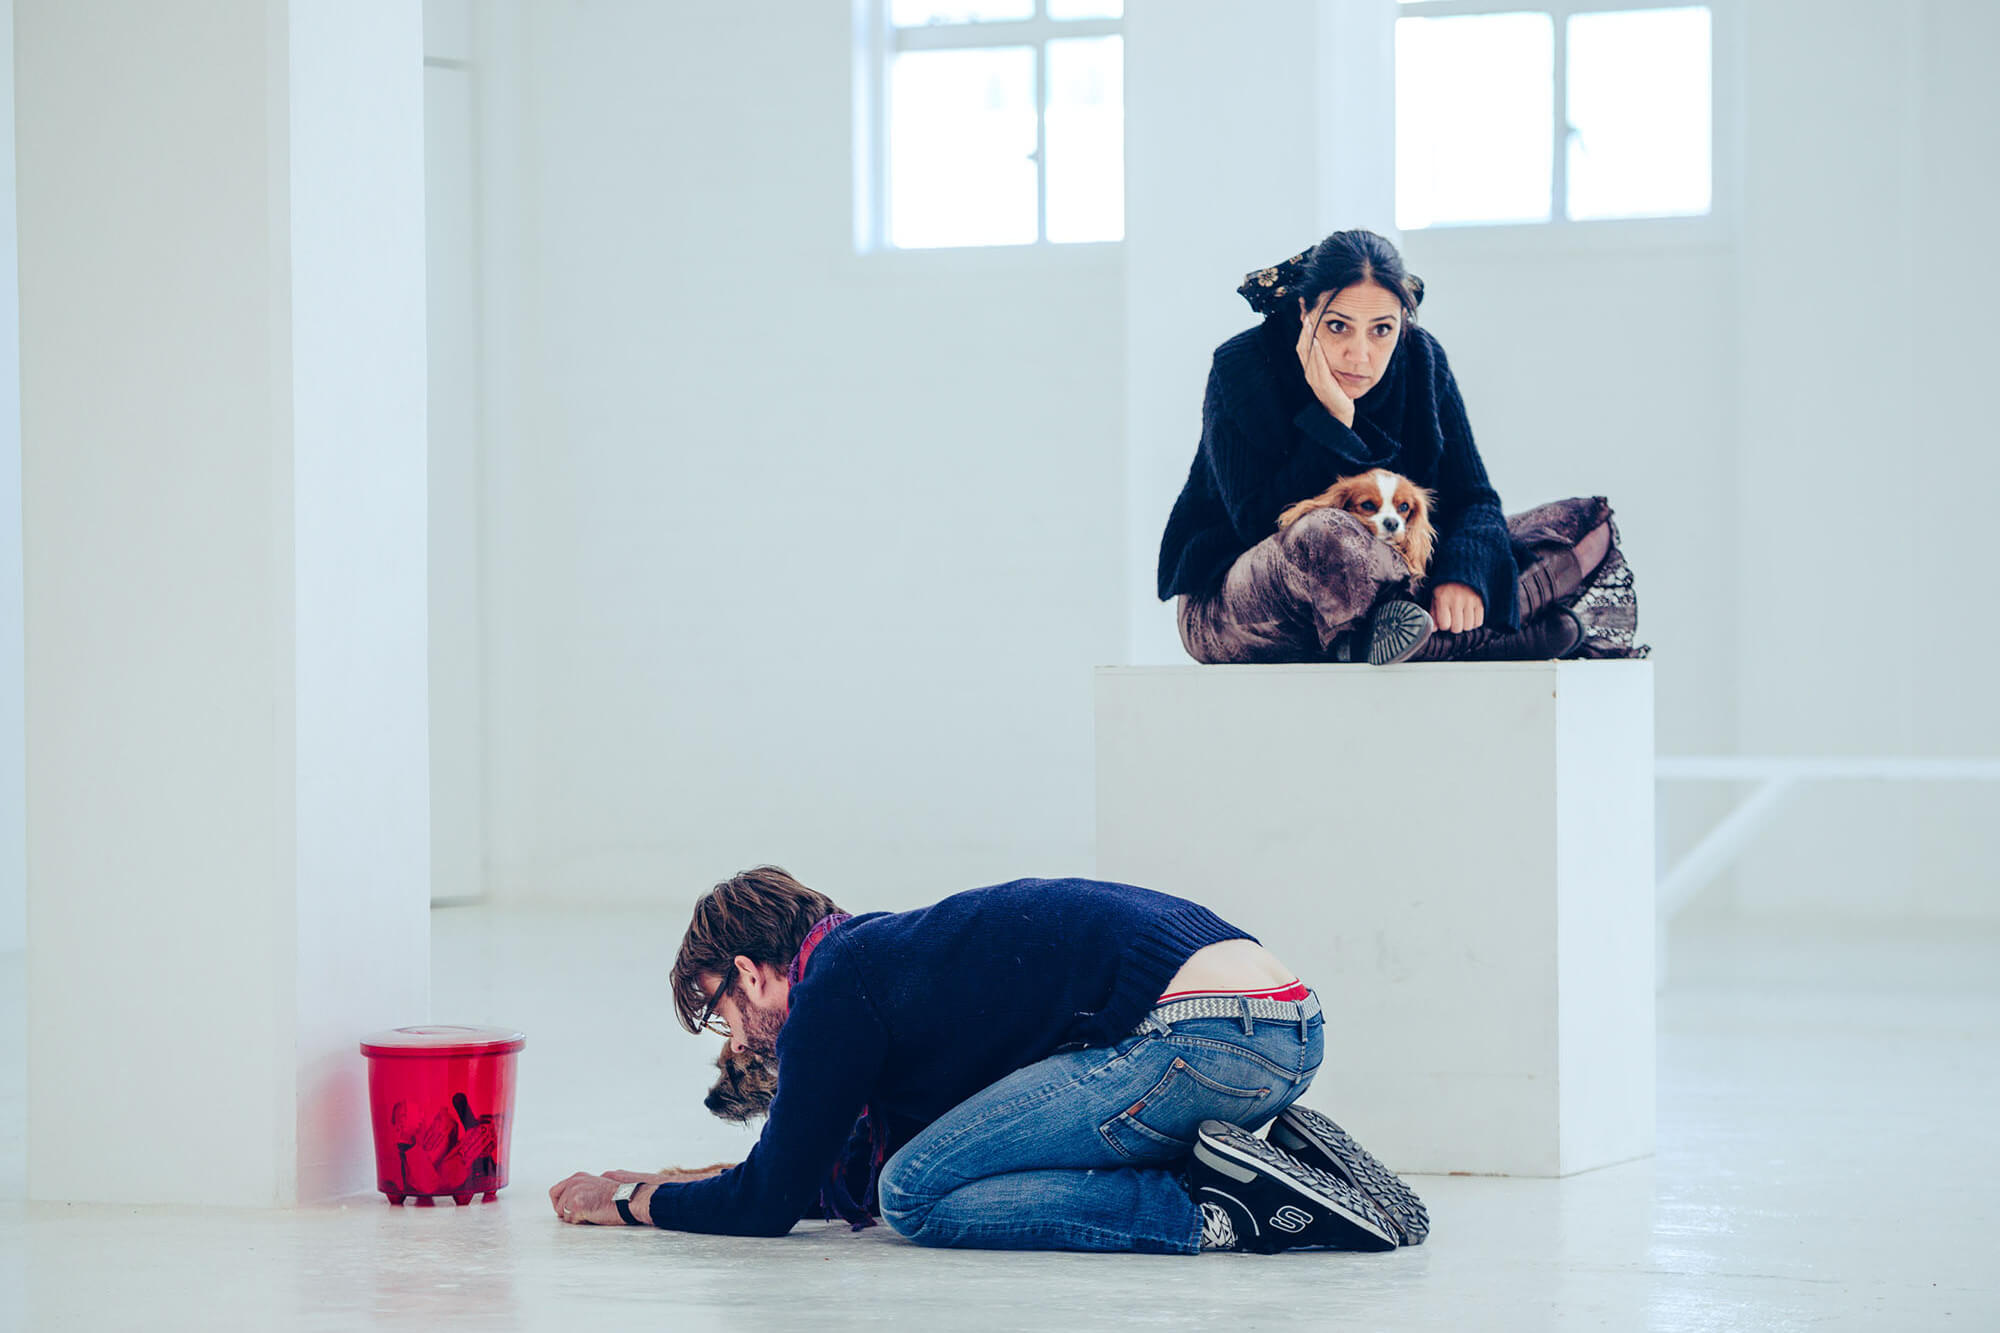 Two people sit in a white room next to dogs. One of them is kneeling.